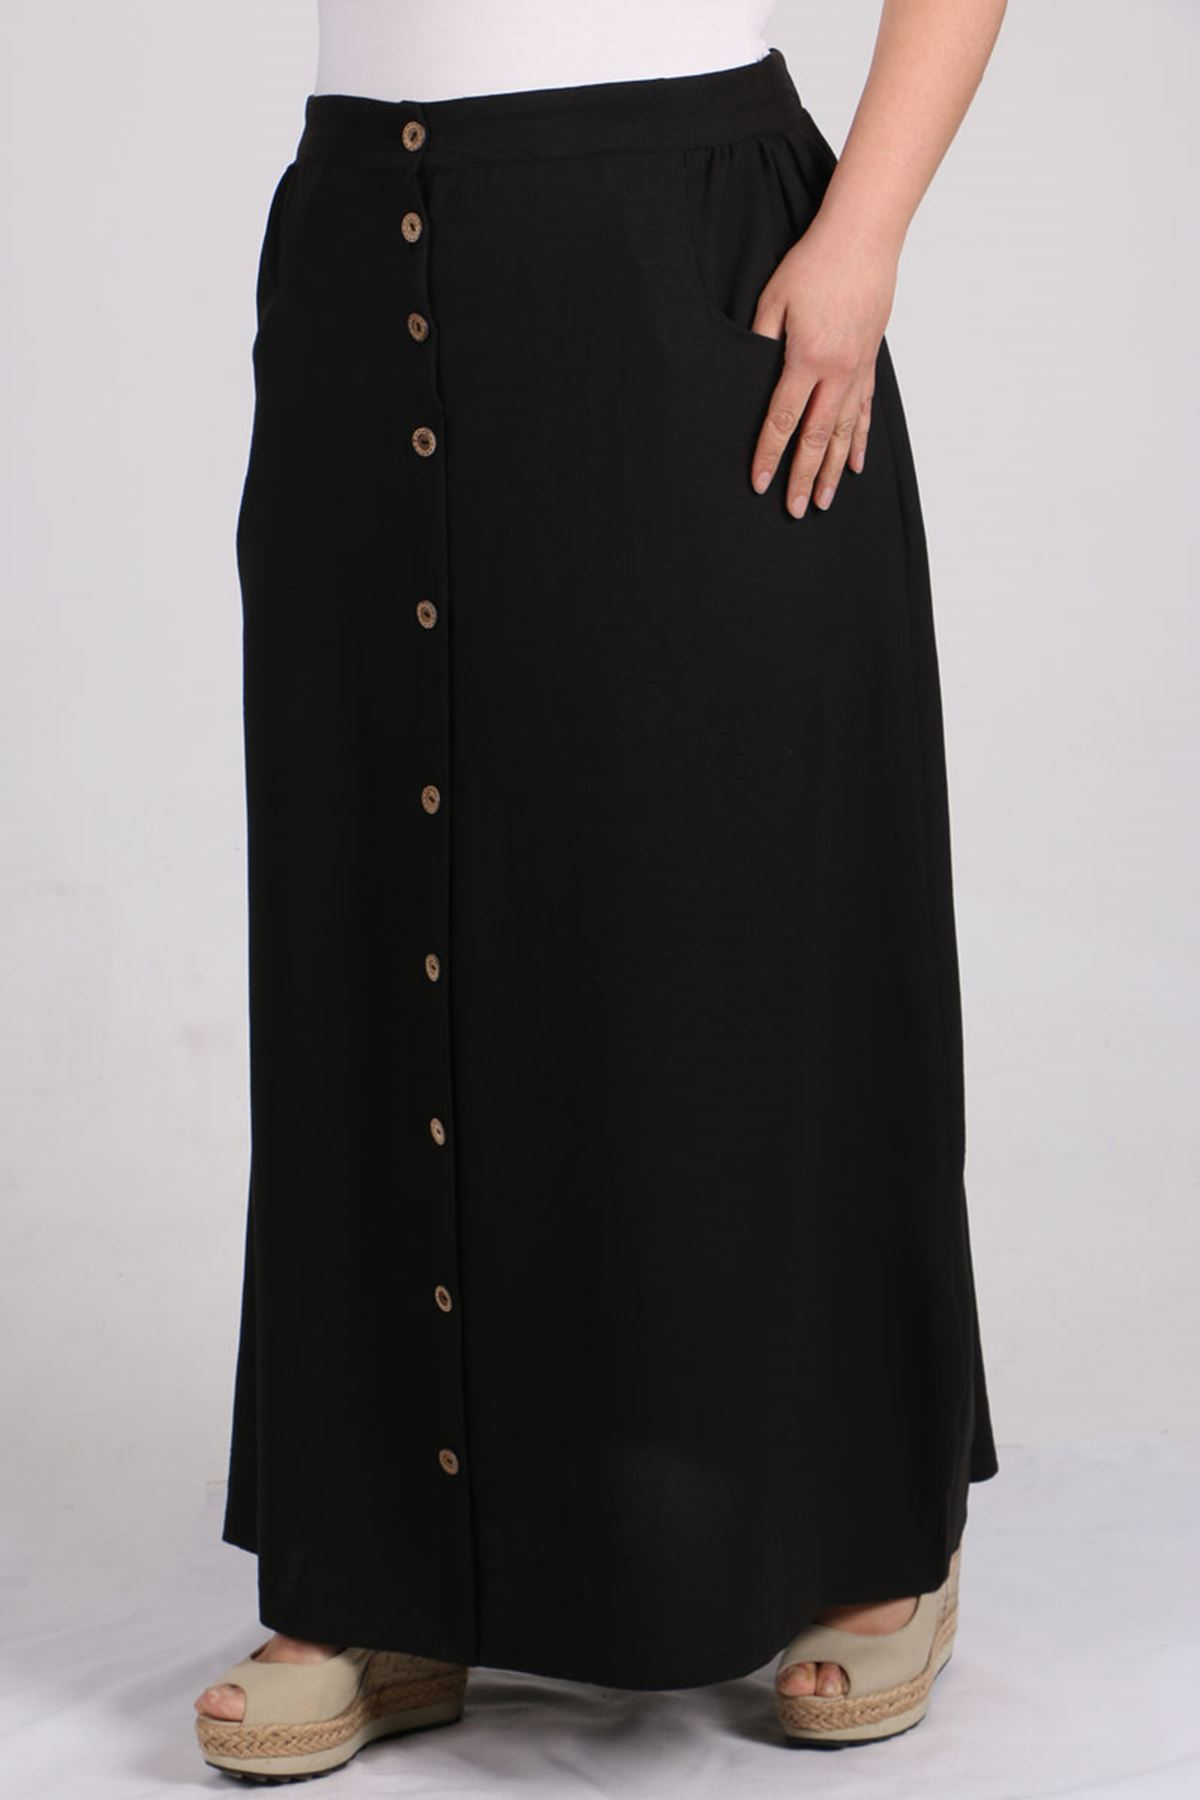 5042 Plus Size Front Buttoned Skirt - Black